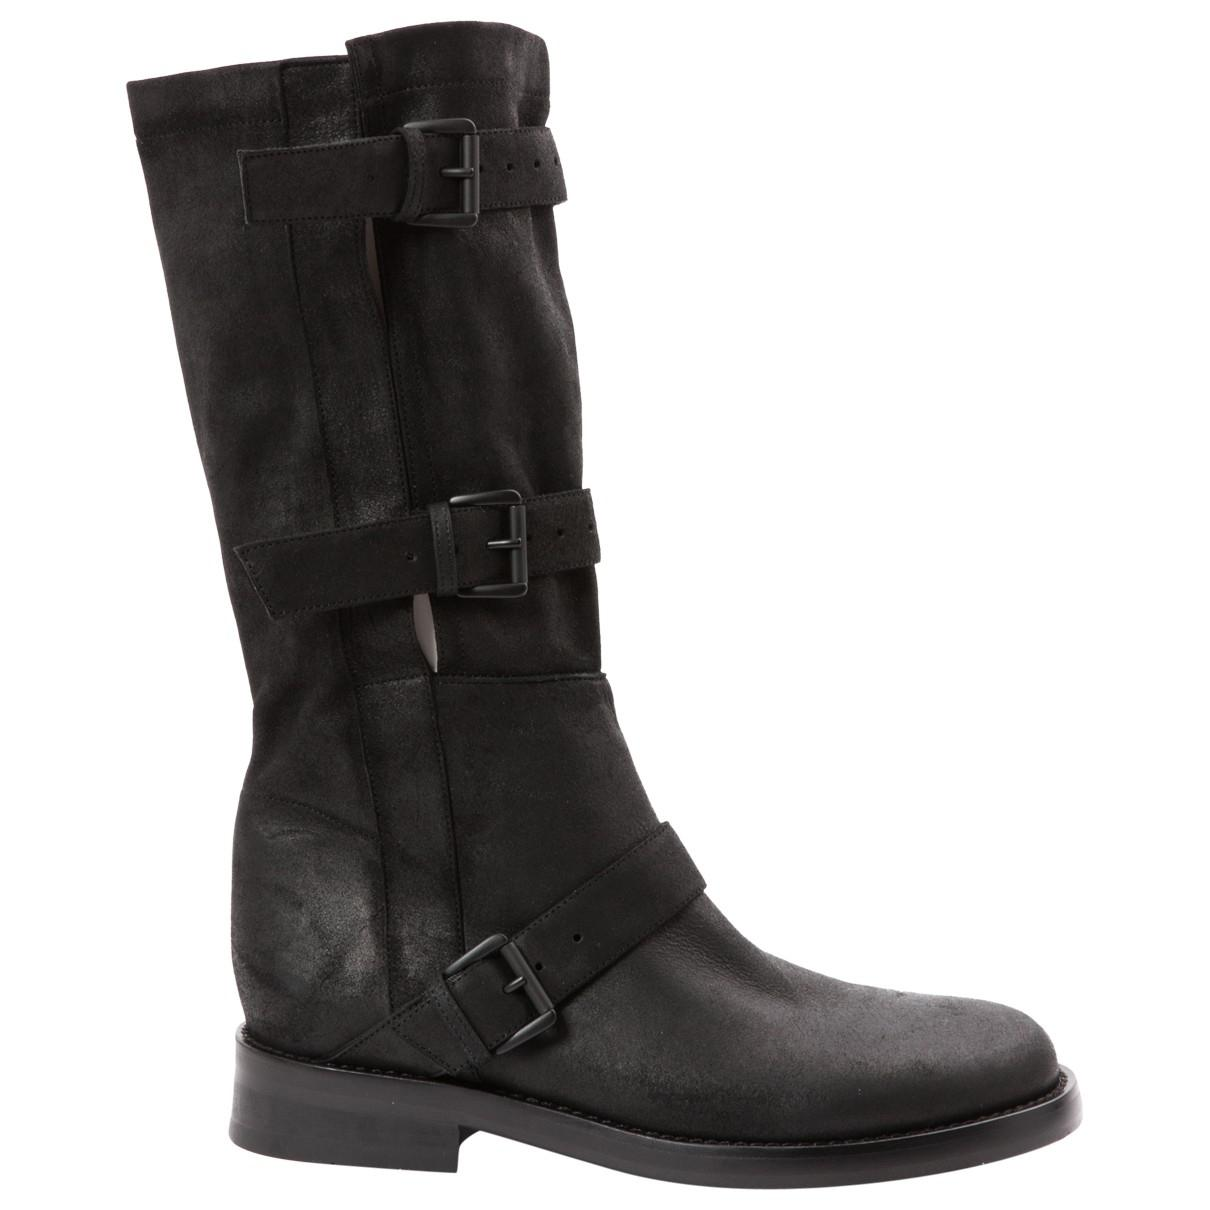 Pre-owned - Leather western boots Ann Demeulemeester Outlet Cost EAJRxs